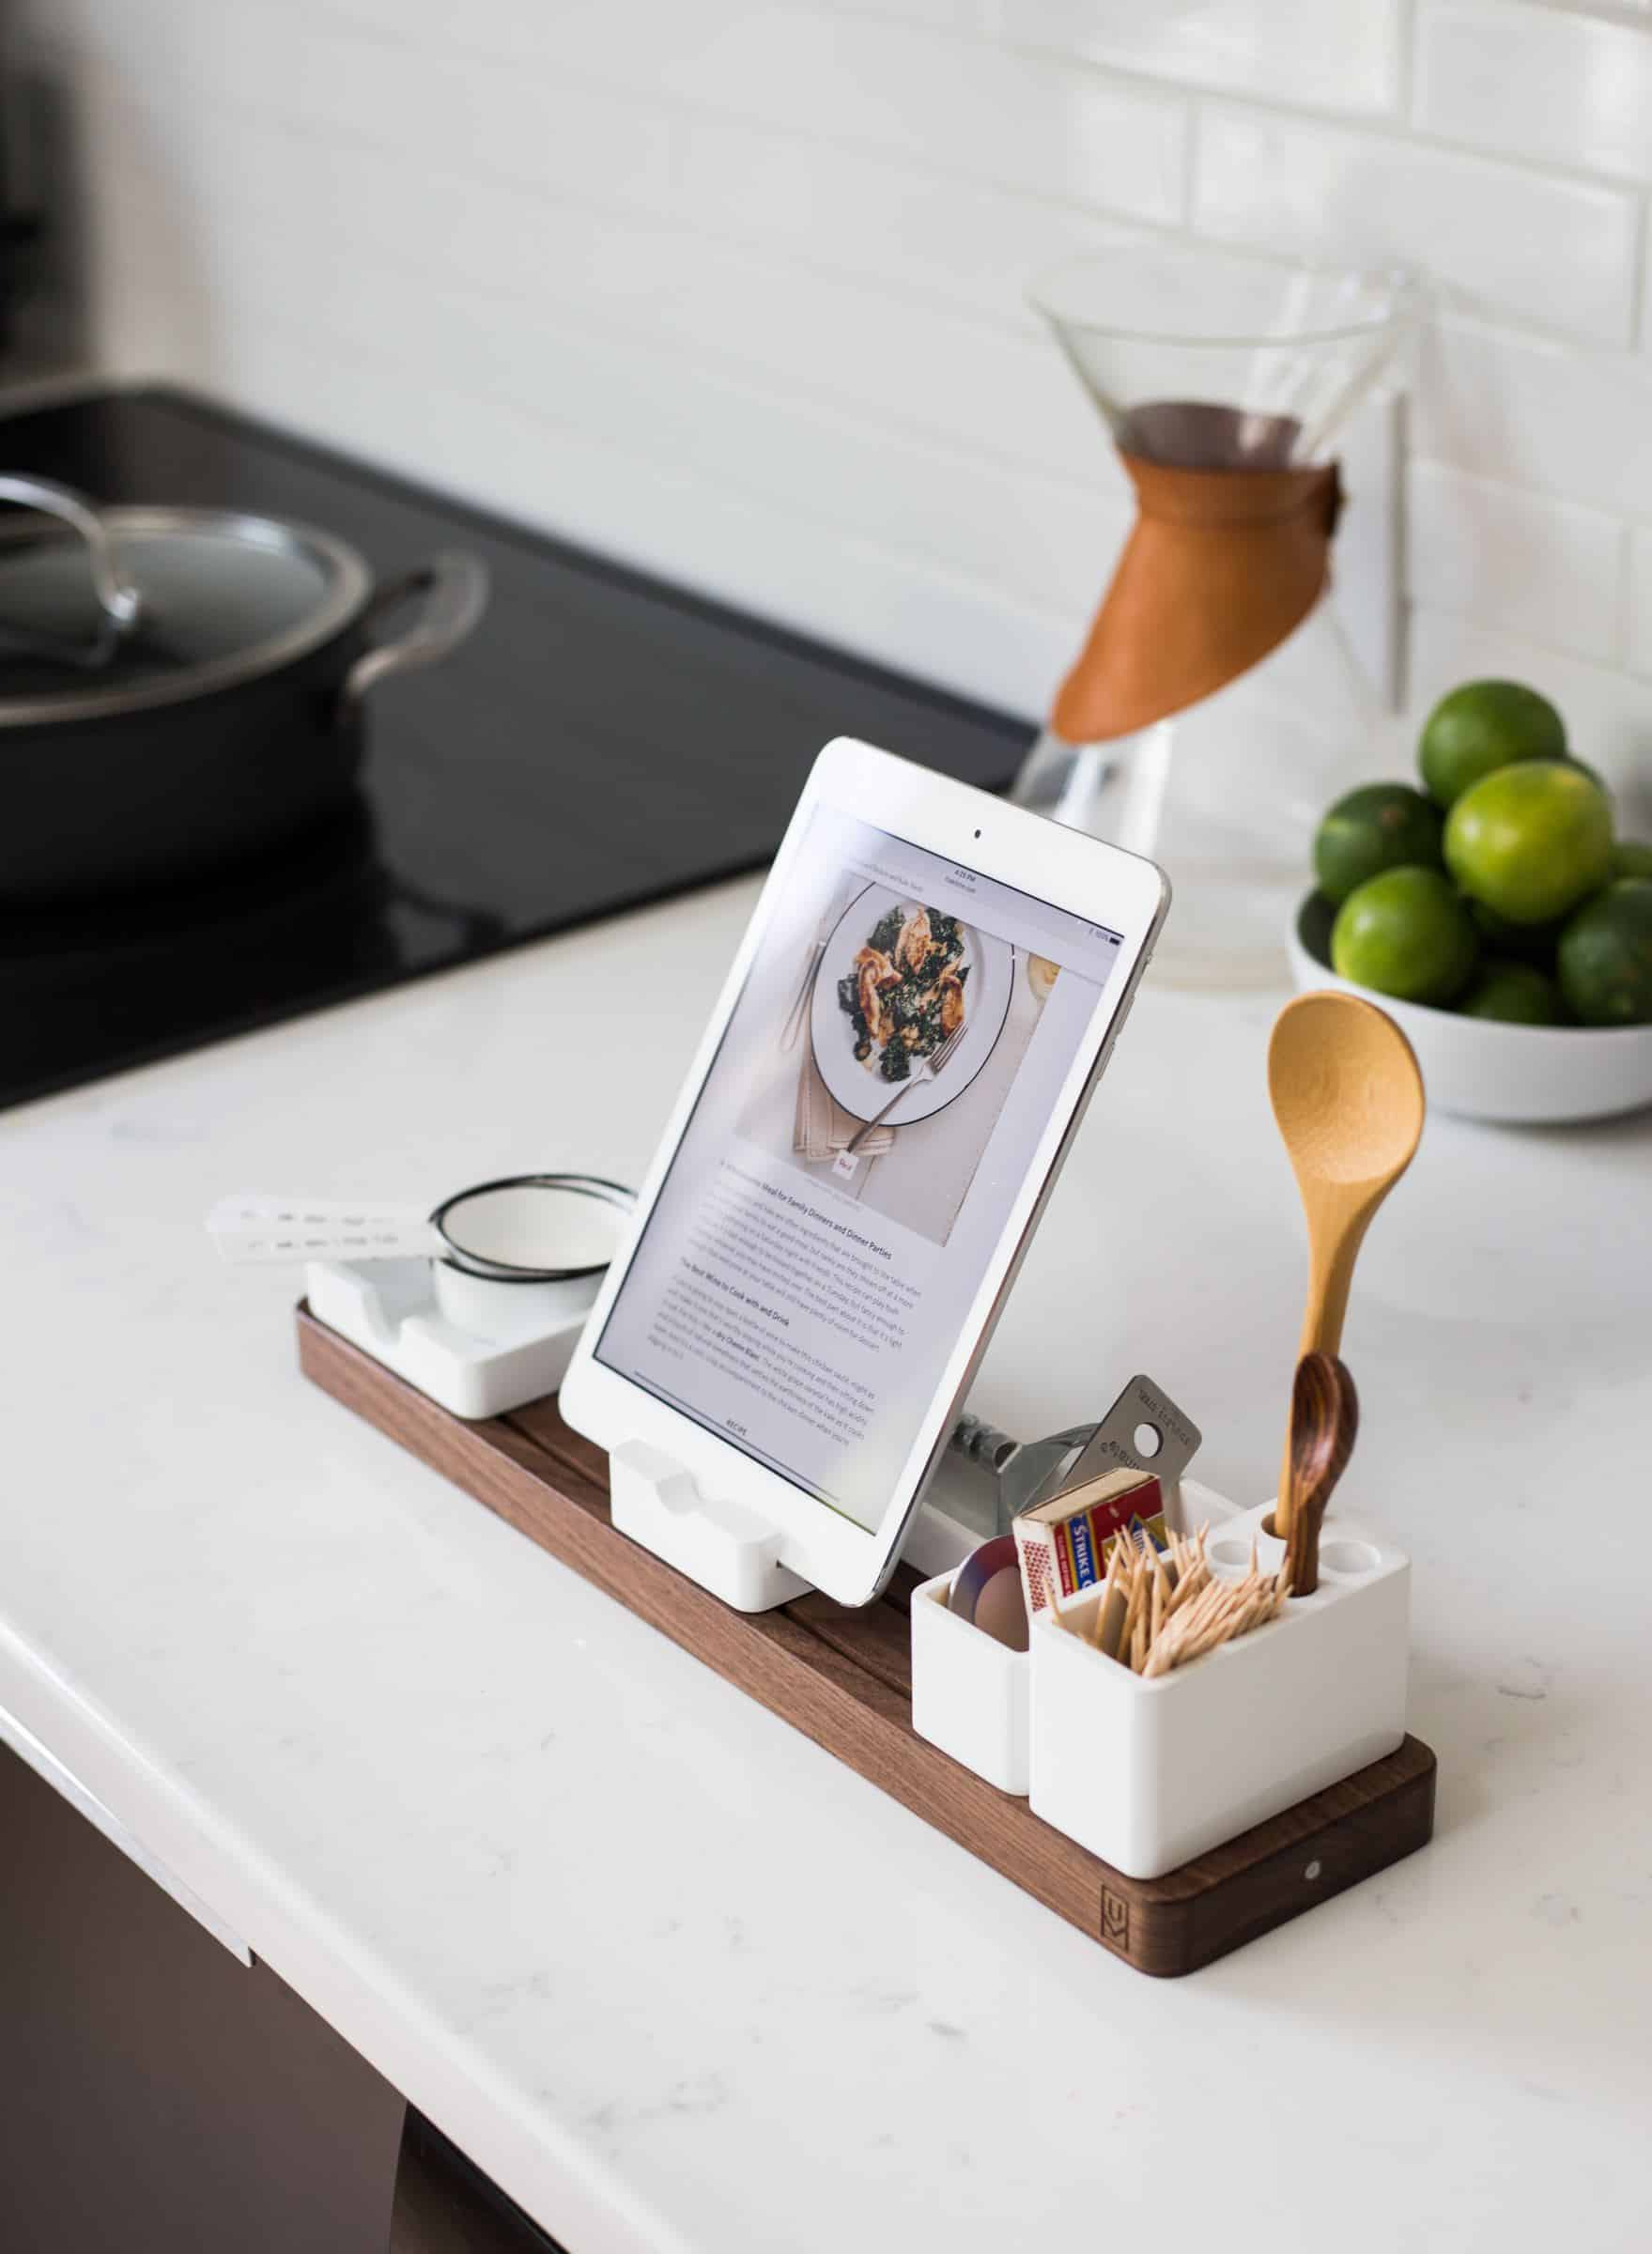 cooking recipe in a tablet